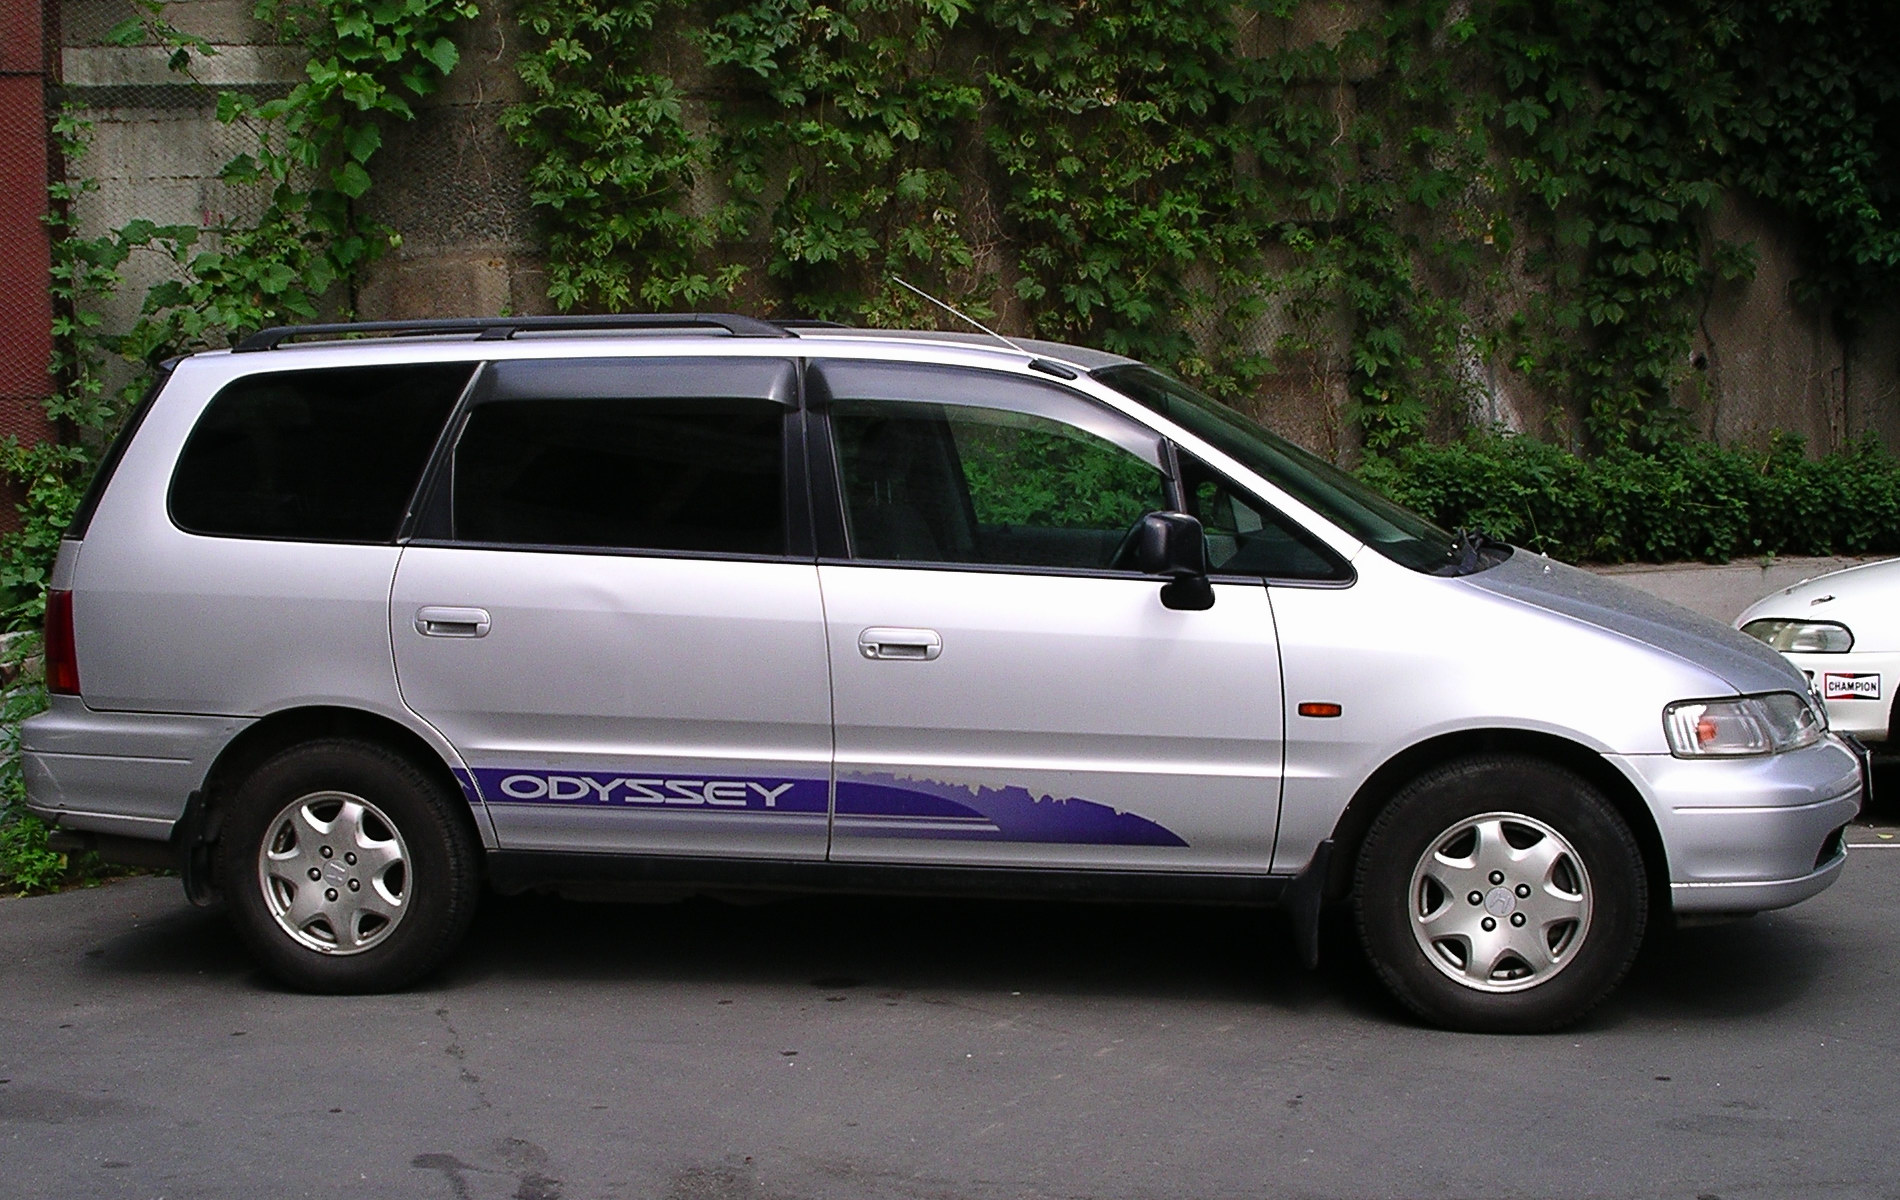 Honda Accord 3 0 2004 Specs And Images likewise Honda Civic 1 8 2013 Specs And Images moreover Hyundai Excel 1 3 2002 Specs And Images additionally Honda Civic 1 8 2013 Specs And Images furthermore Ford Ranger Wheels. on 1999 honda odyssey seats